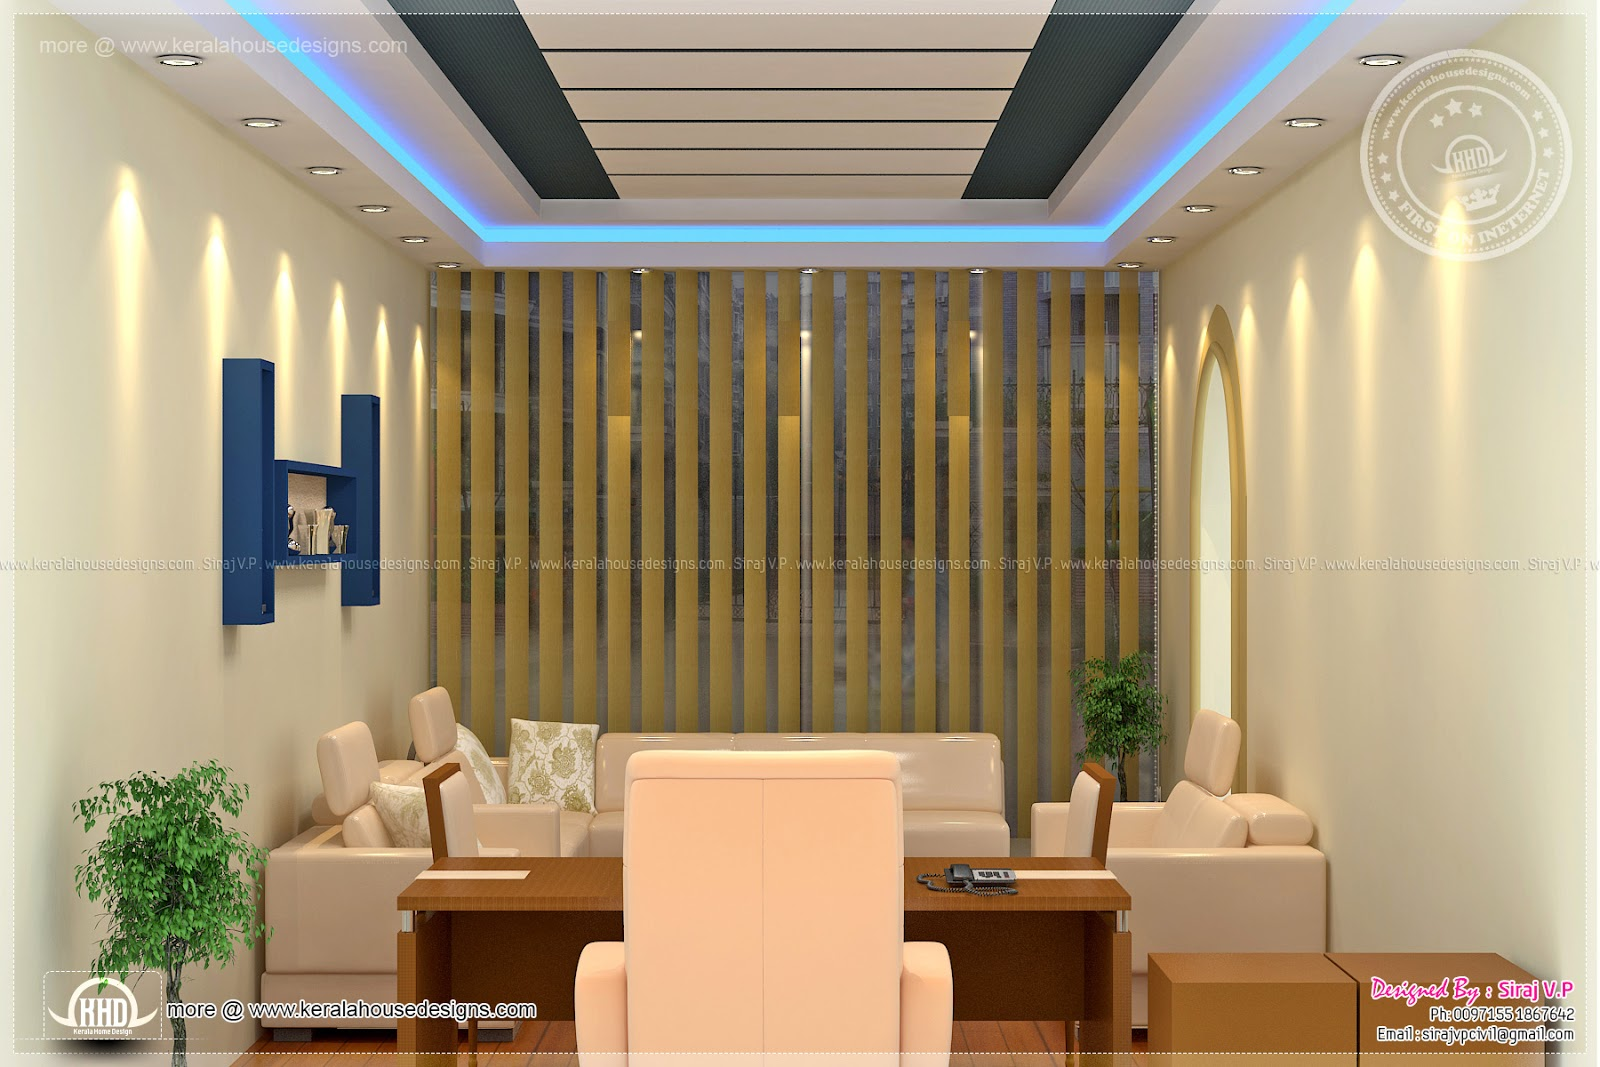 Home office interior design by siraj v p home kerala plans for Home interior design photo gallery